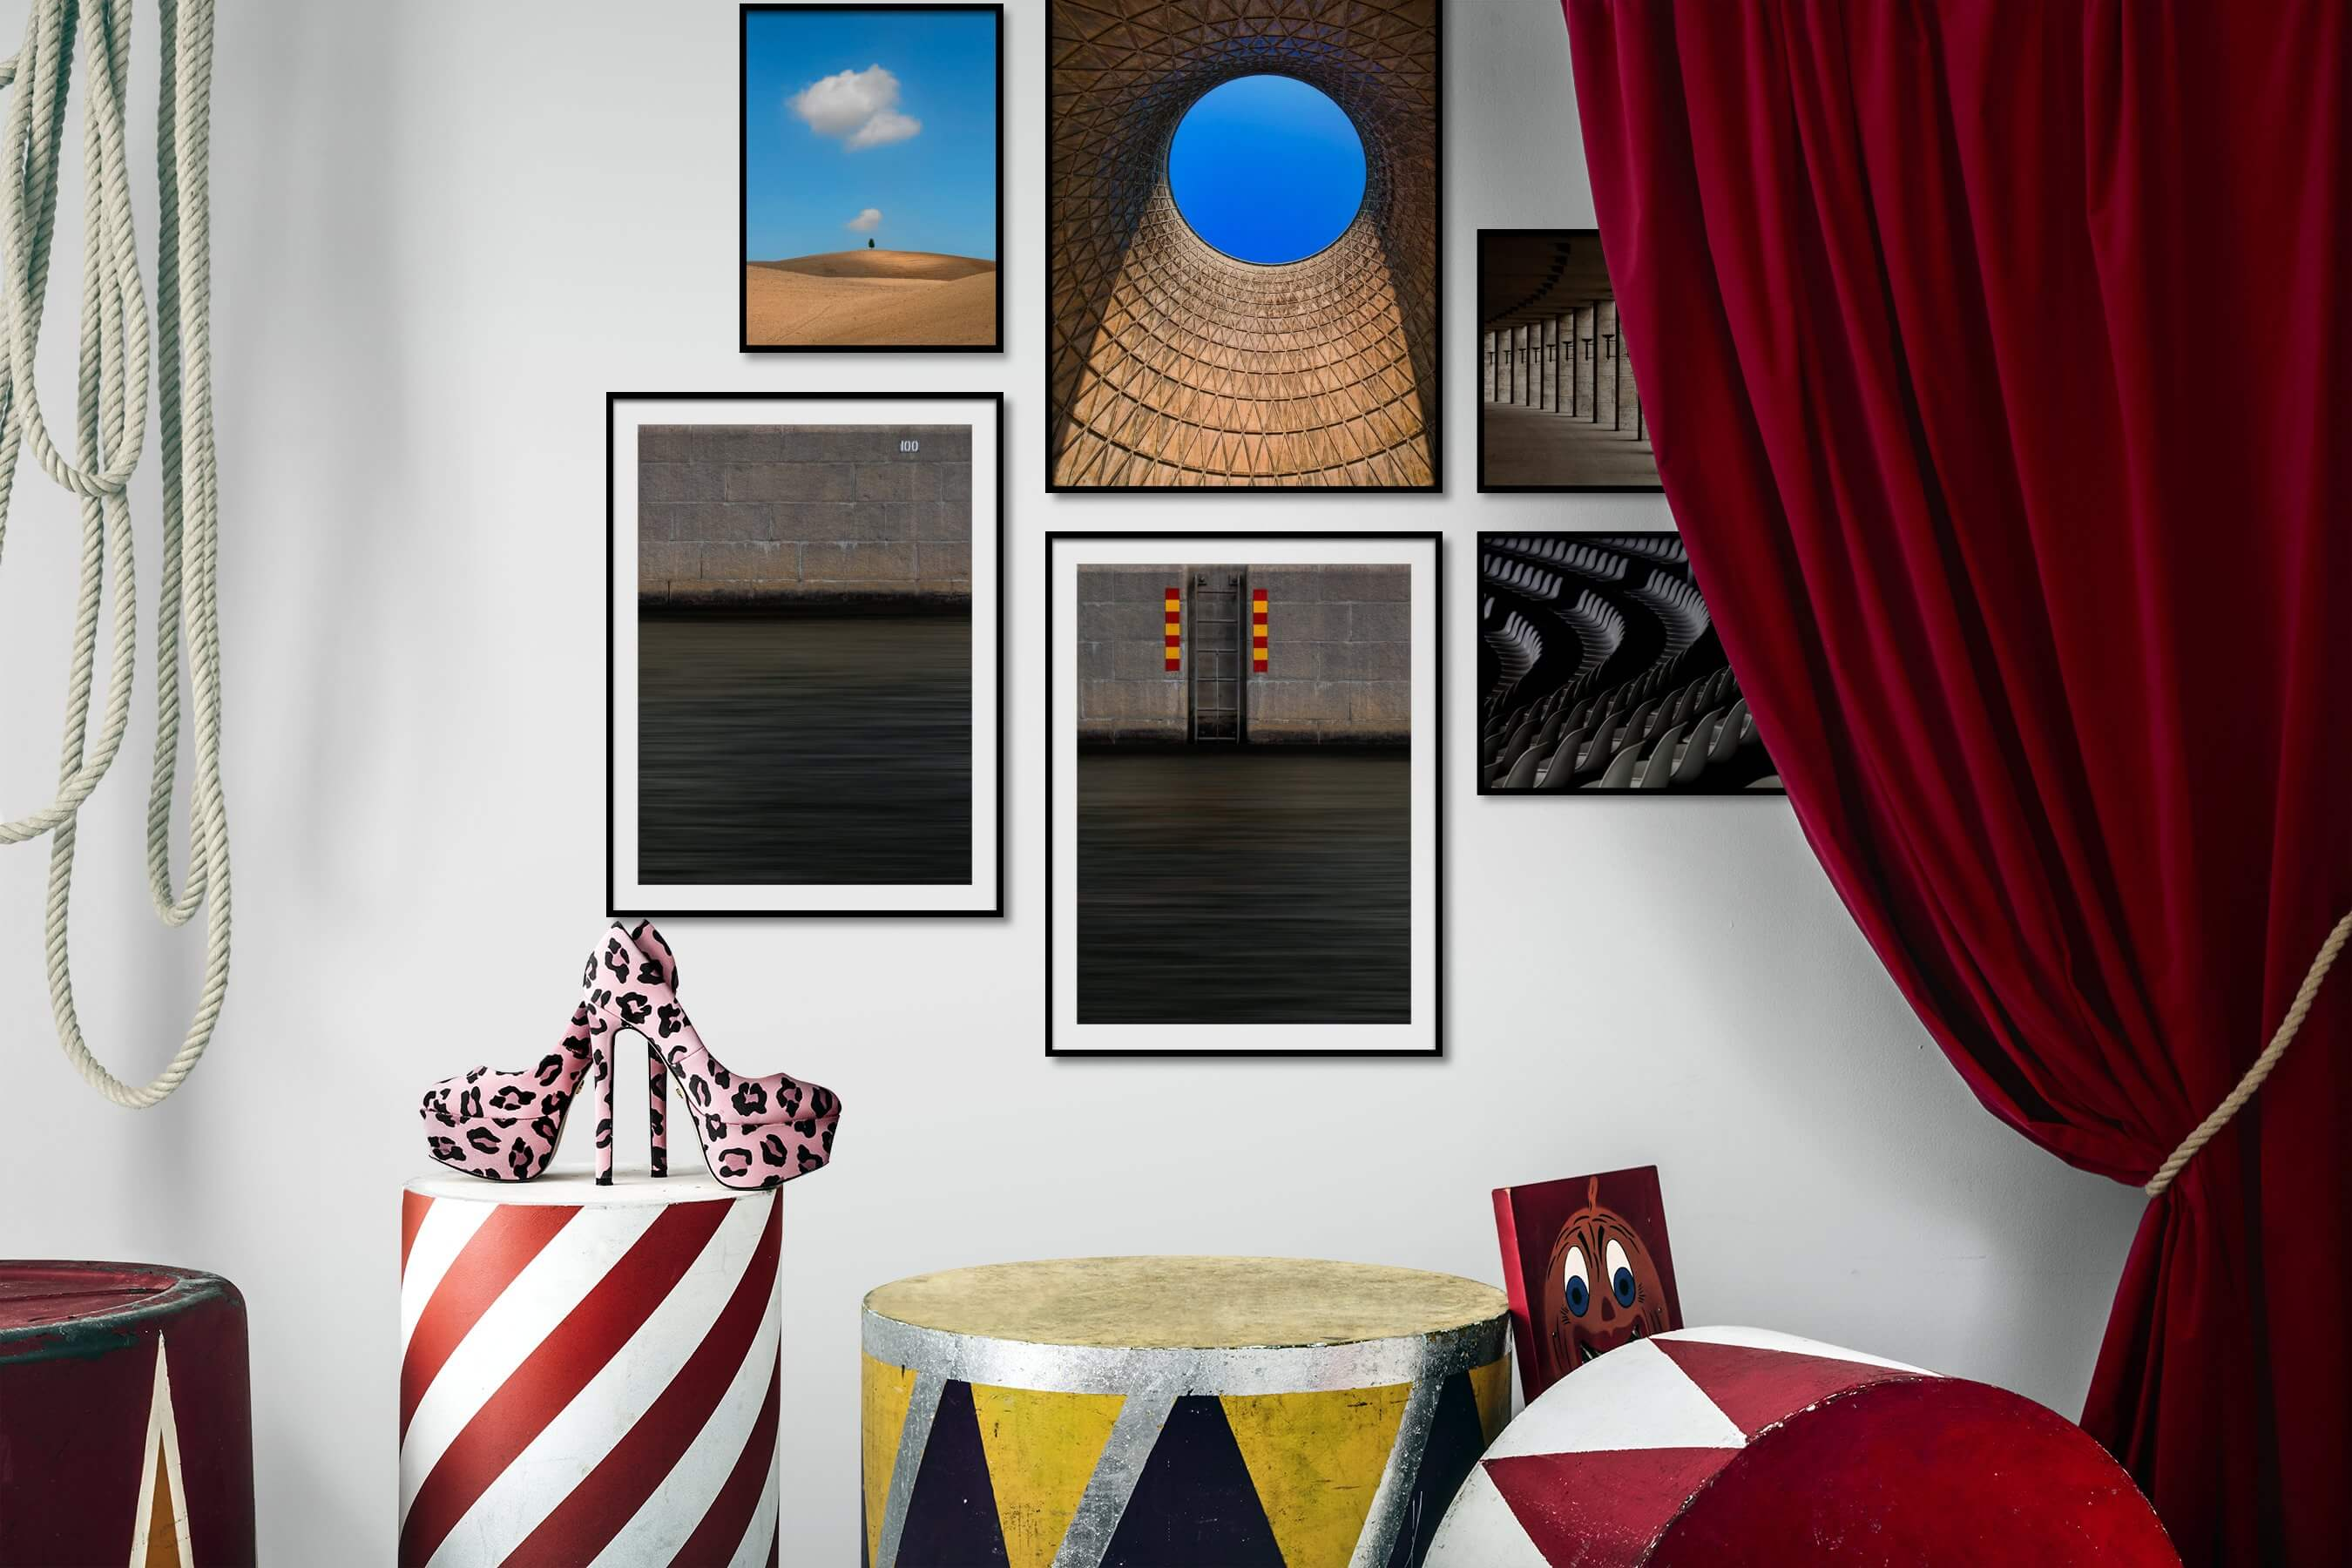 Gallery wall idea with six framed pictures arranged on a wall depicting For the Minimalist, Country Life, For the Moderate, Beach & Water, and City Life